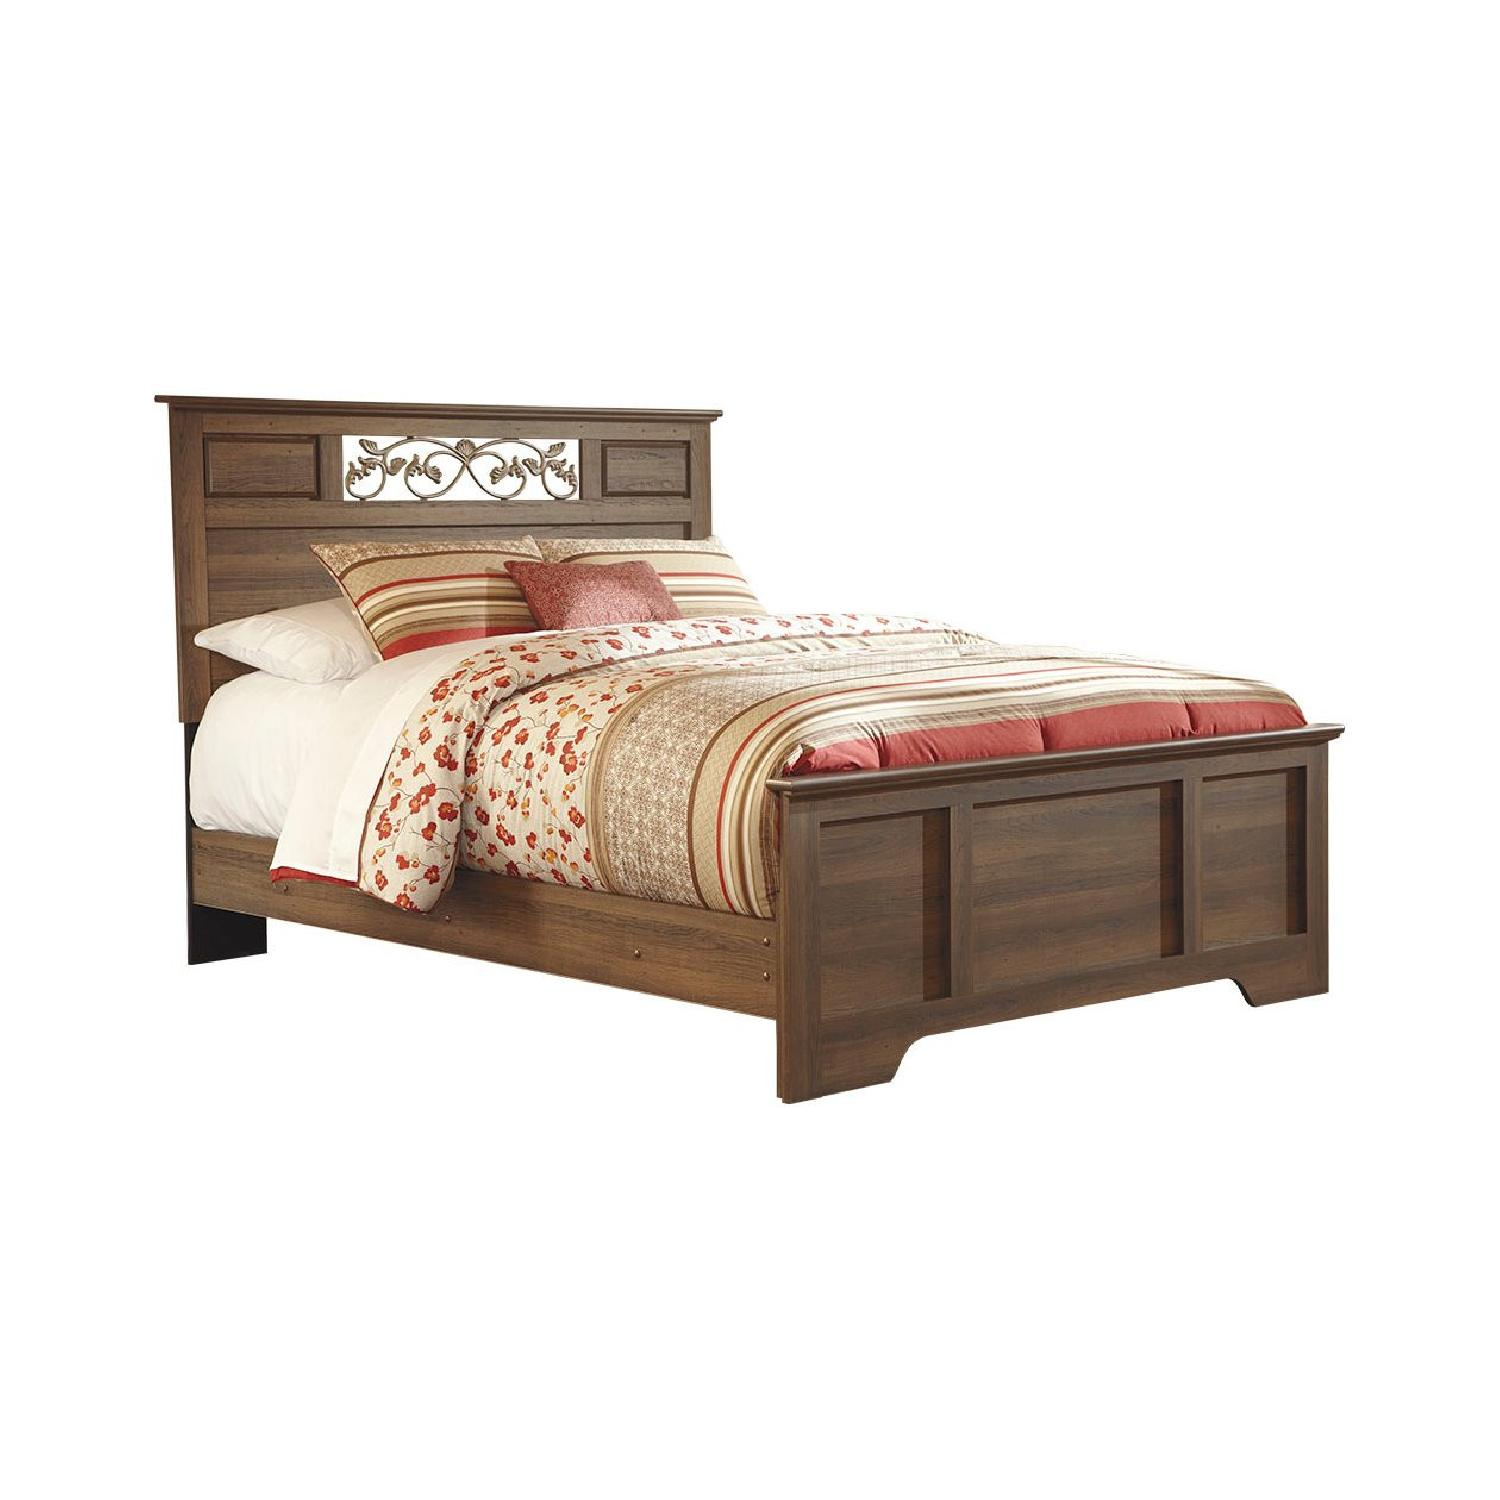 Ashley Allymore Queen Panel Bed - image-0